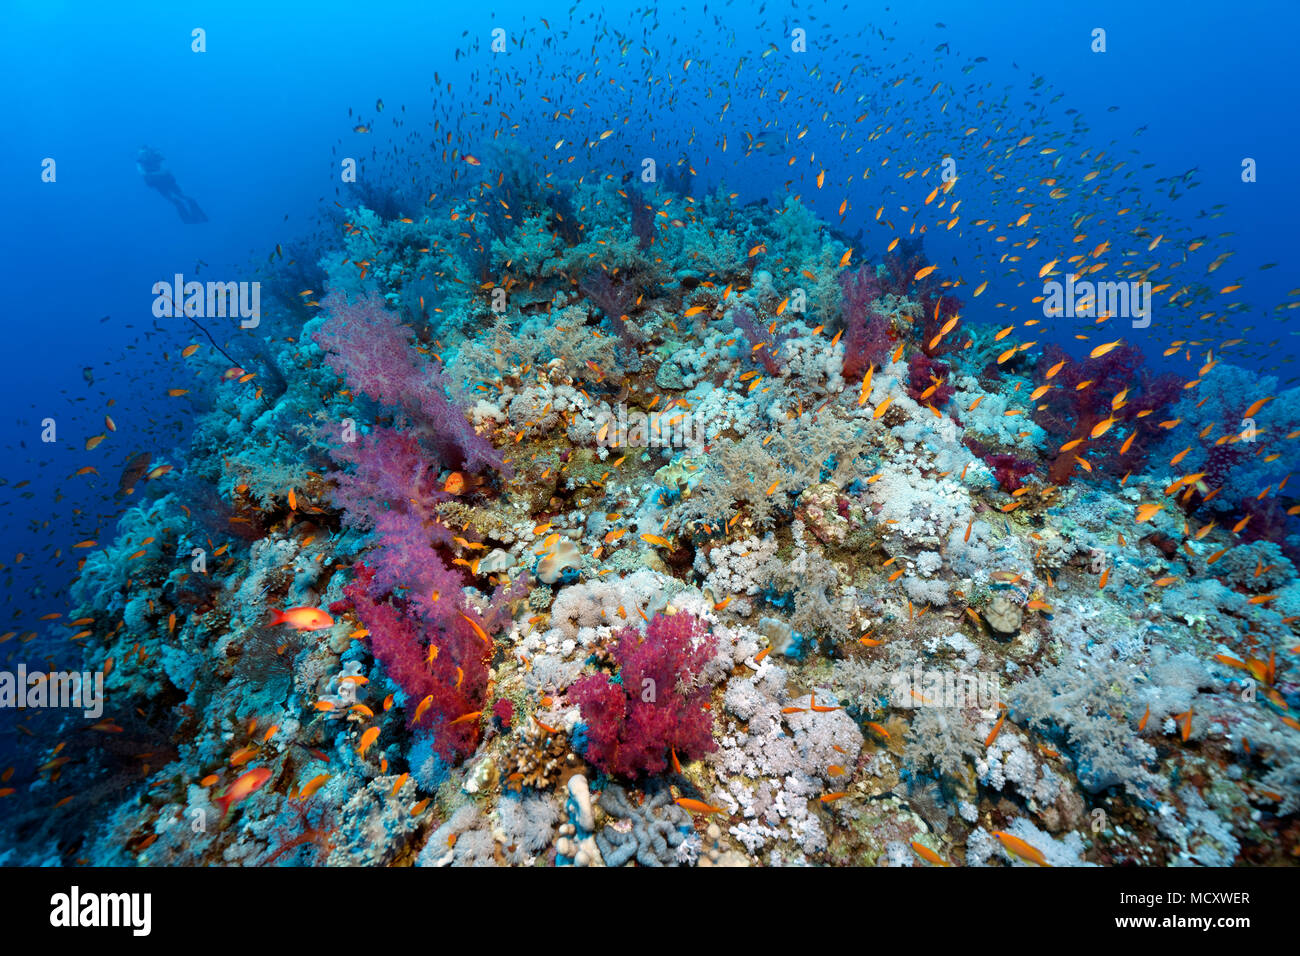 Swarm of Anthias (Anthiinae), with Soft corals (Alcyonacea) overgrown coral reef, Elphinstone Reef, North Plateau, Red Sea - Stock Image